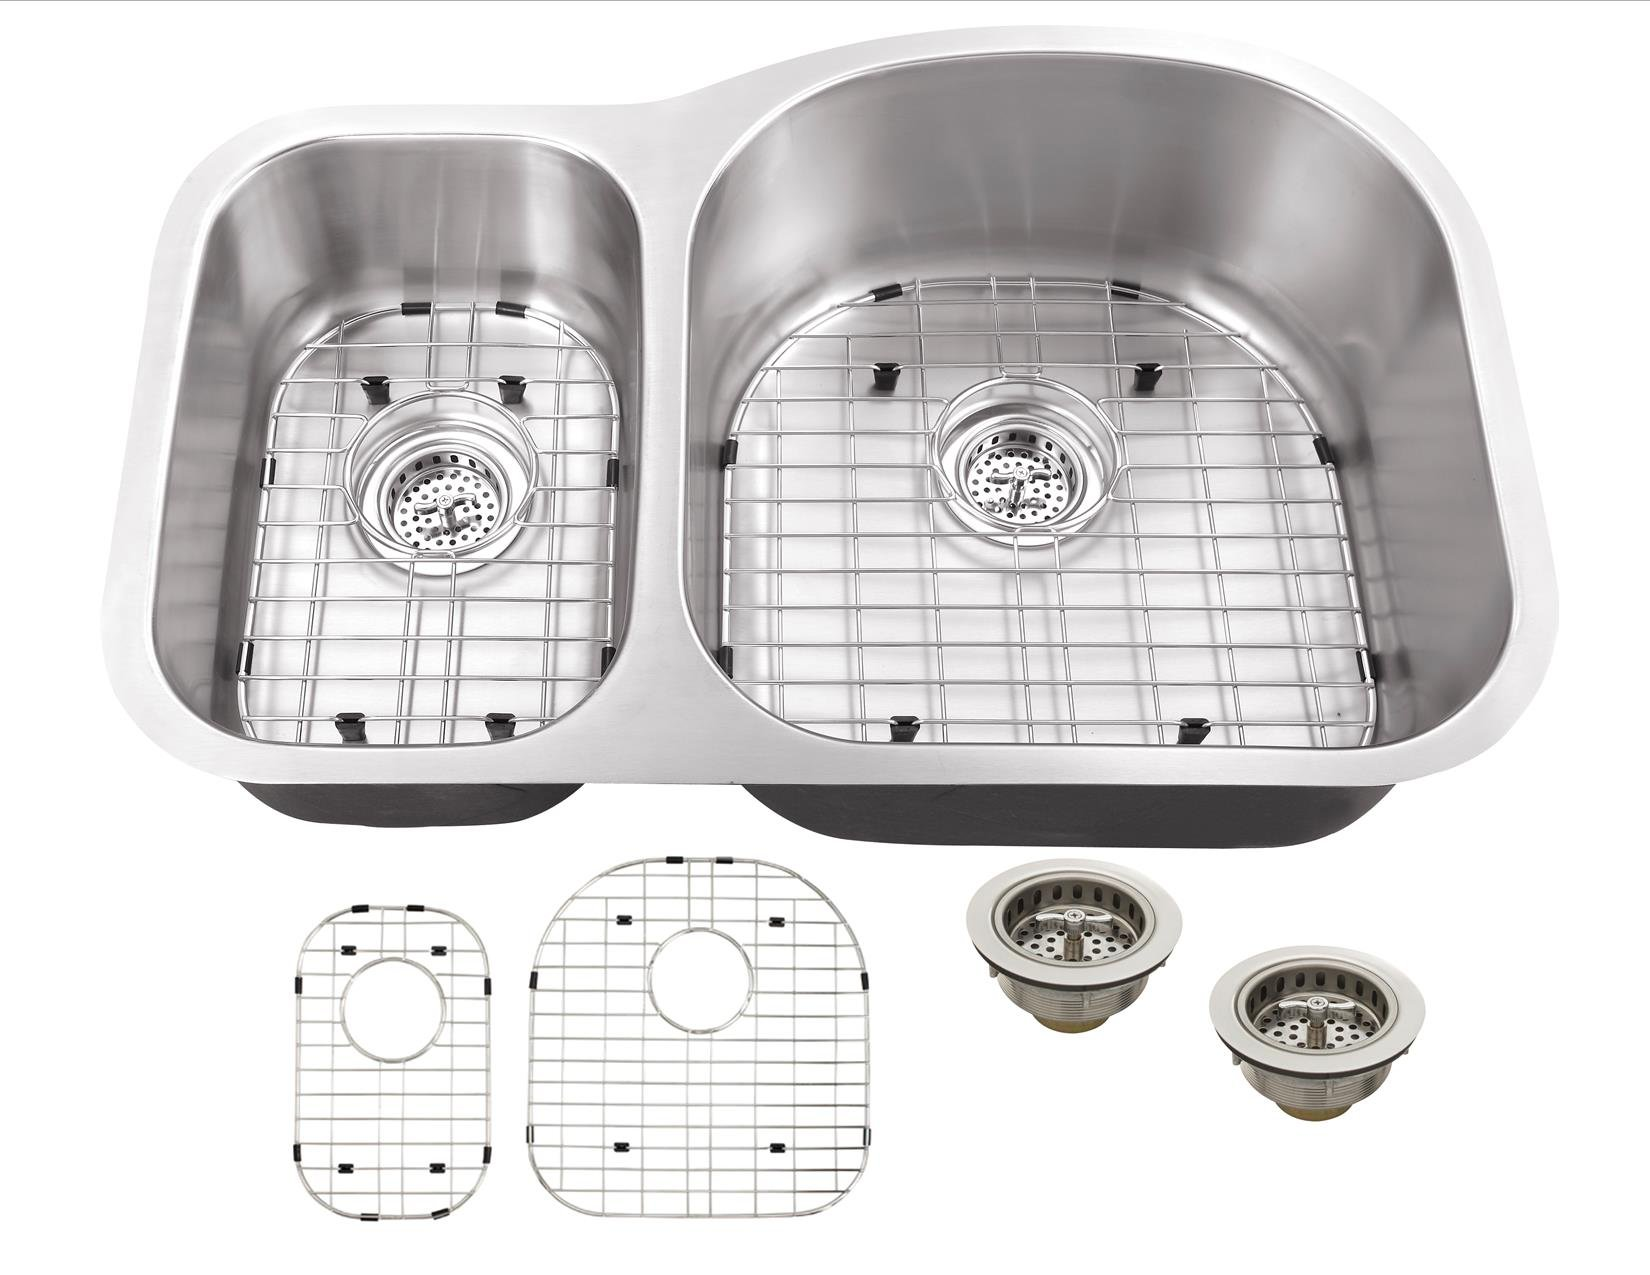 MS3070P 18-Gauge 32-in x 20 3/4-in x 9-in Stainless Steel 30/70 Offset Double Bowl Kitchen Sink with Grid Set and Strainers